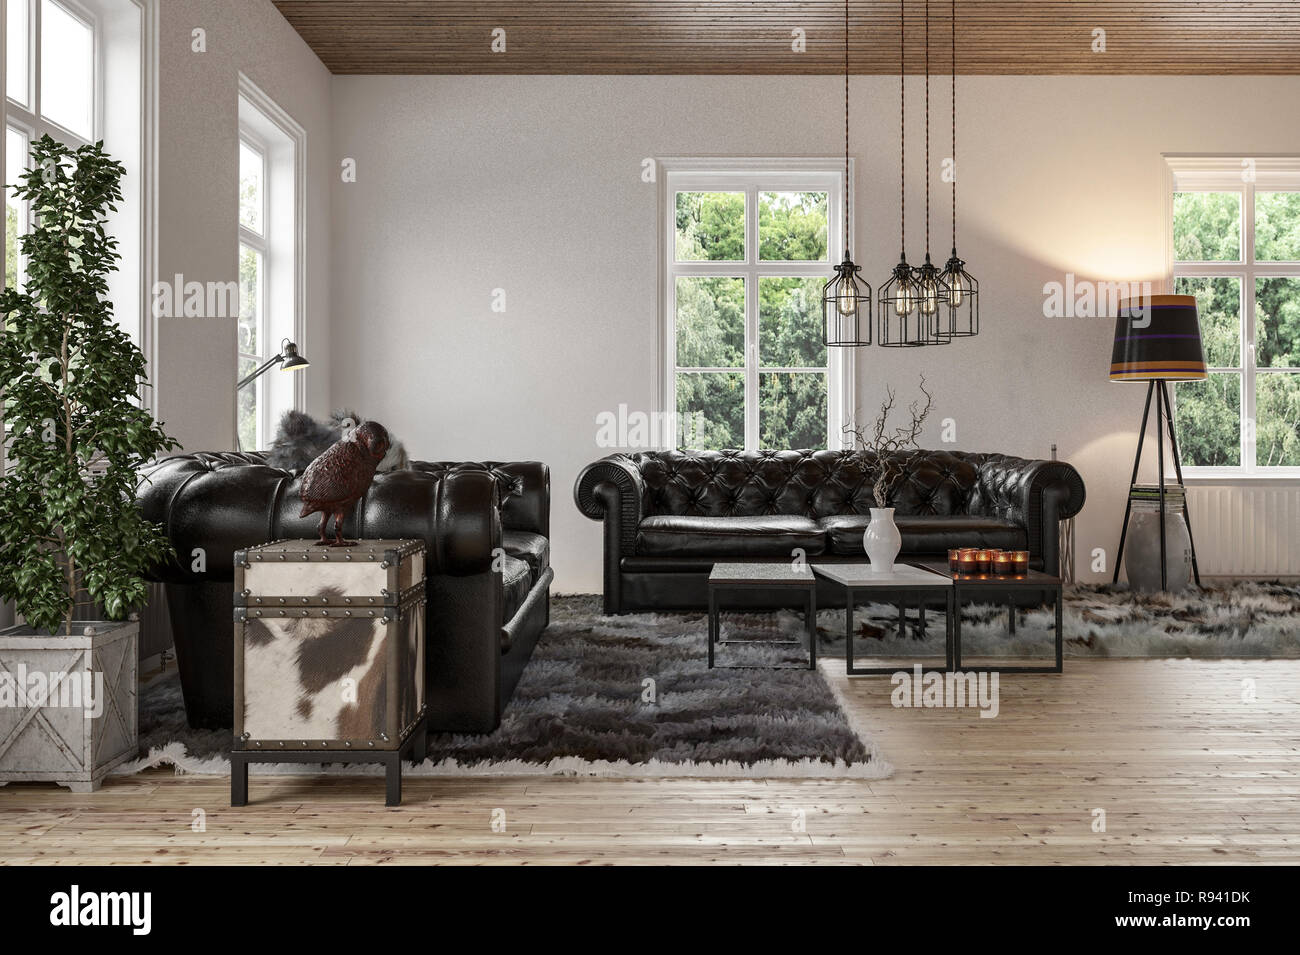 Spacious living room with two black leather couches on fur ...